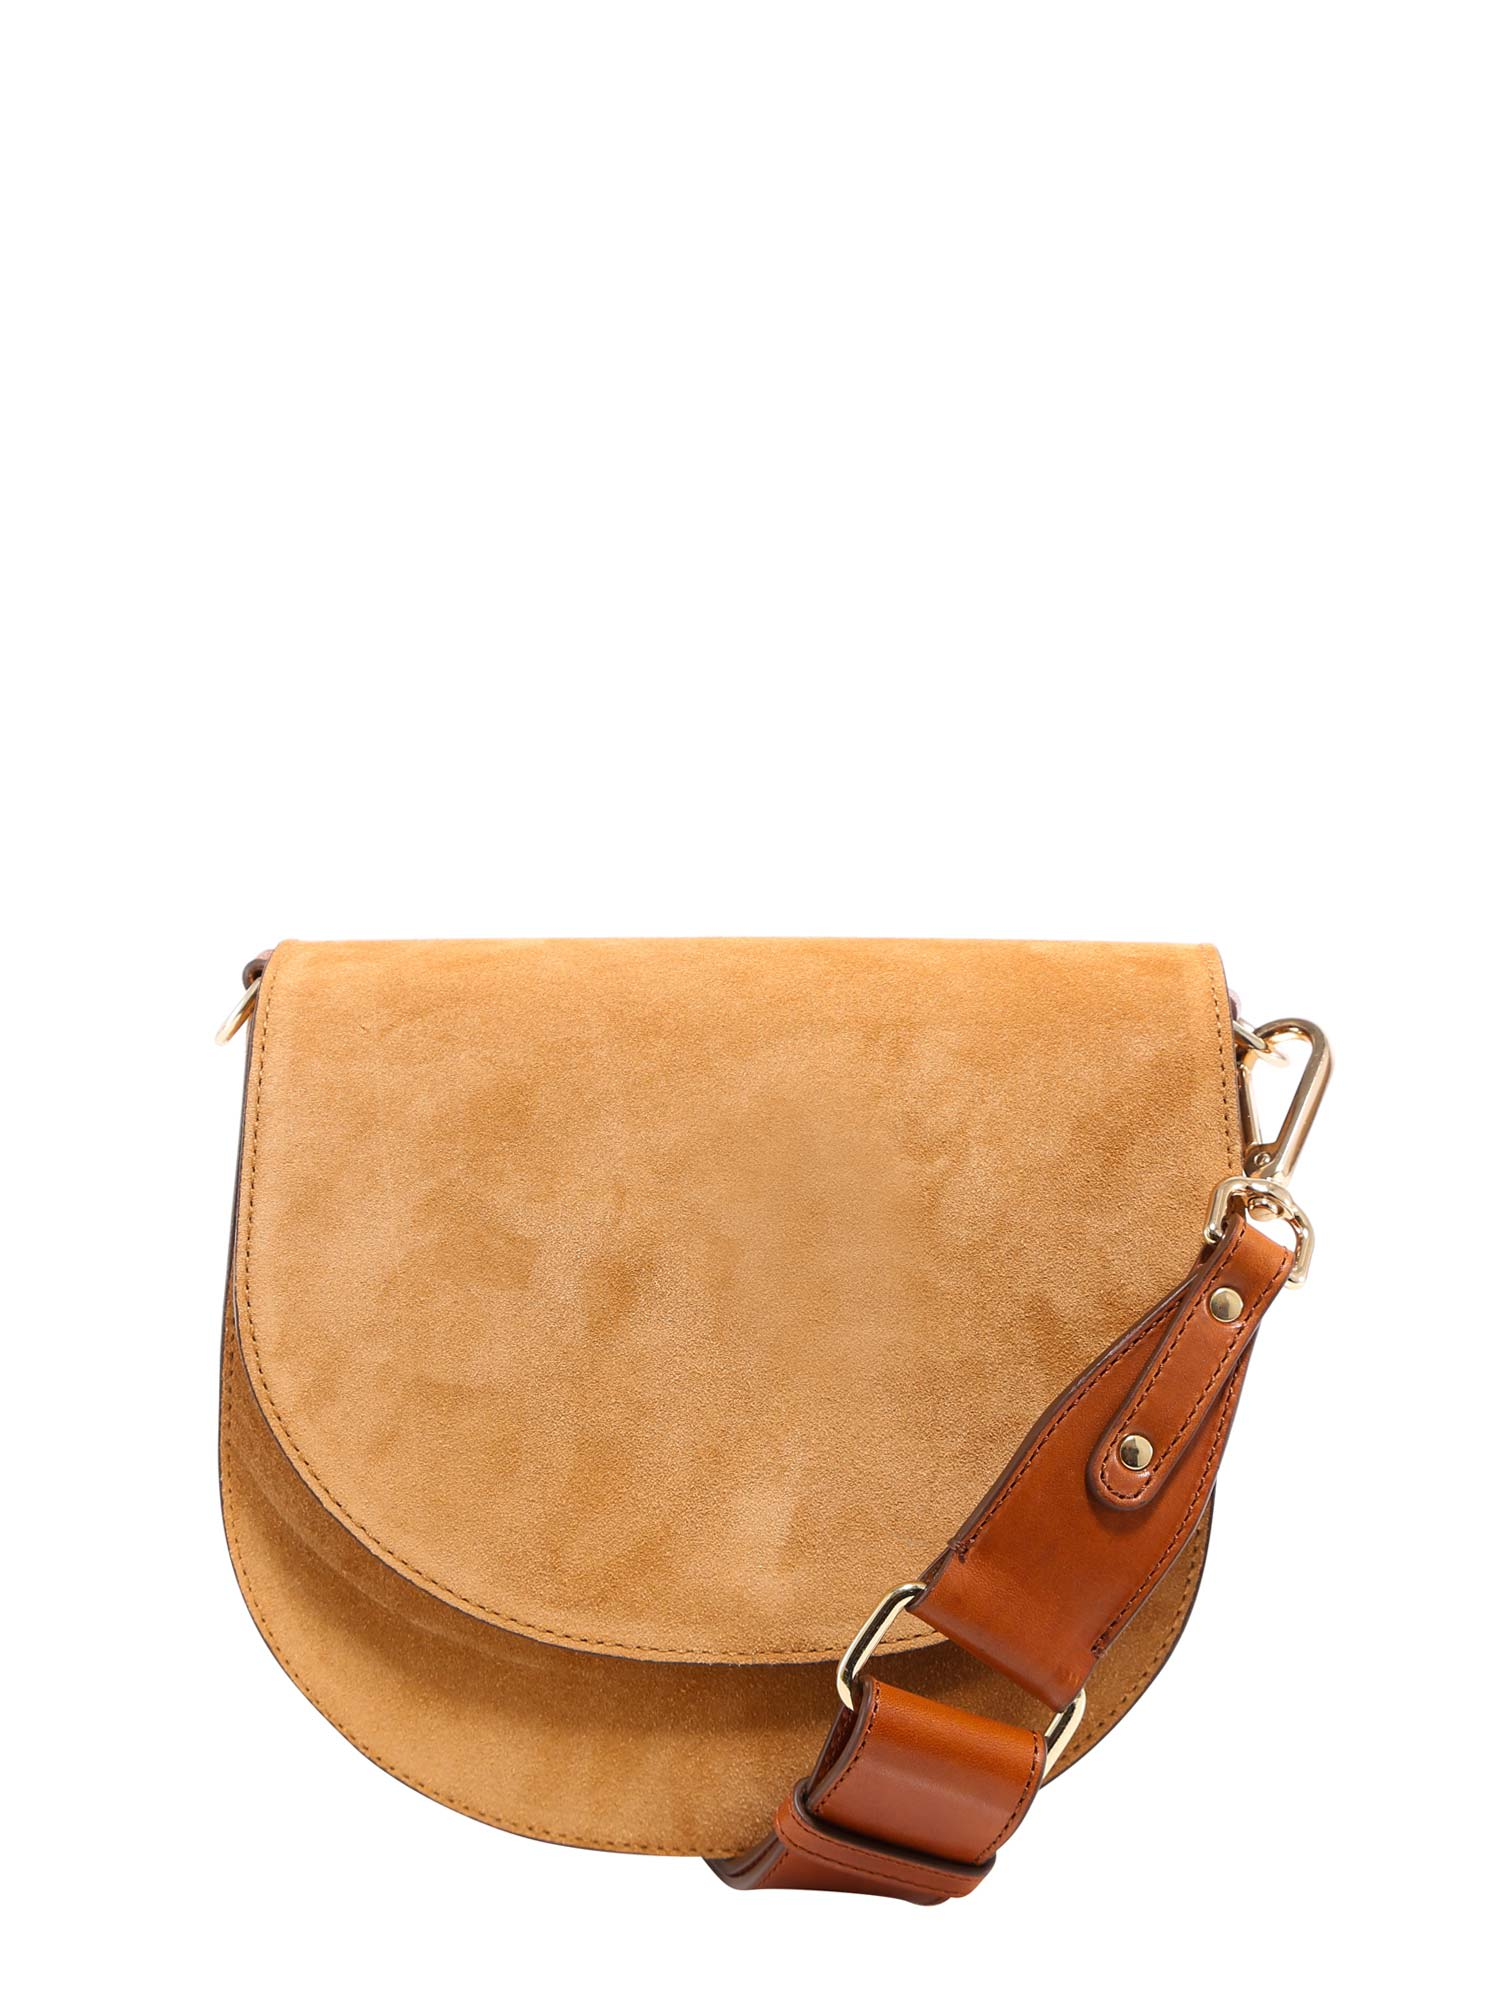 Closed SHOULDER BAG